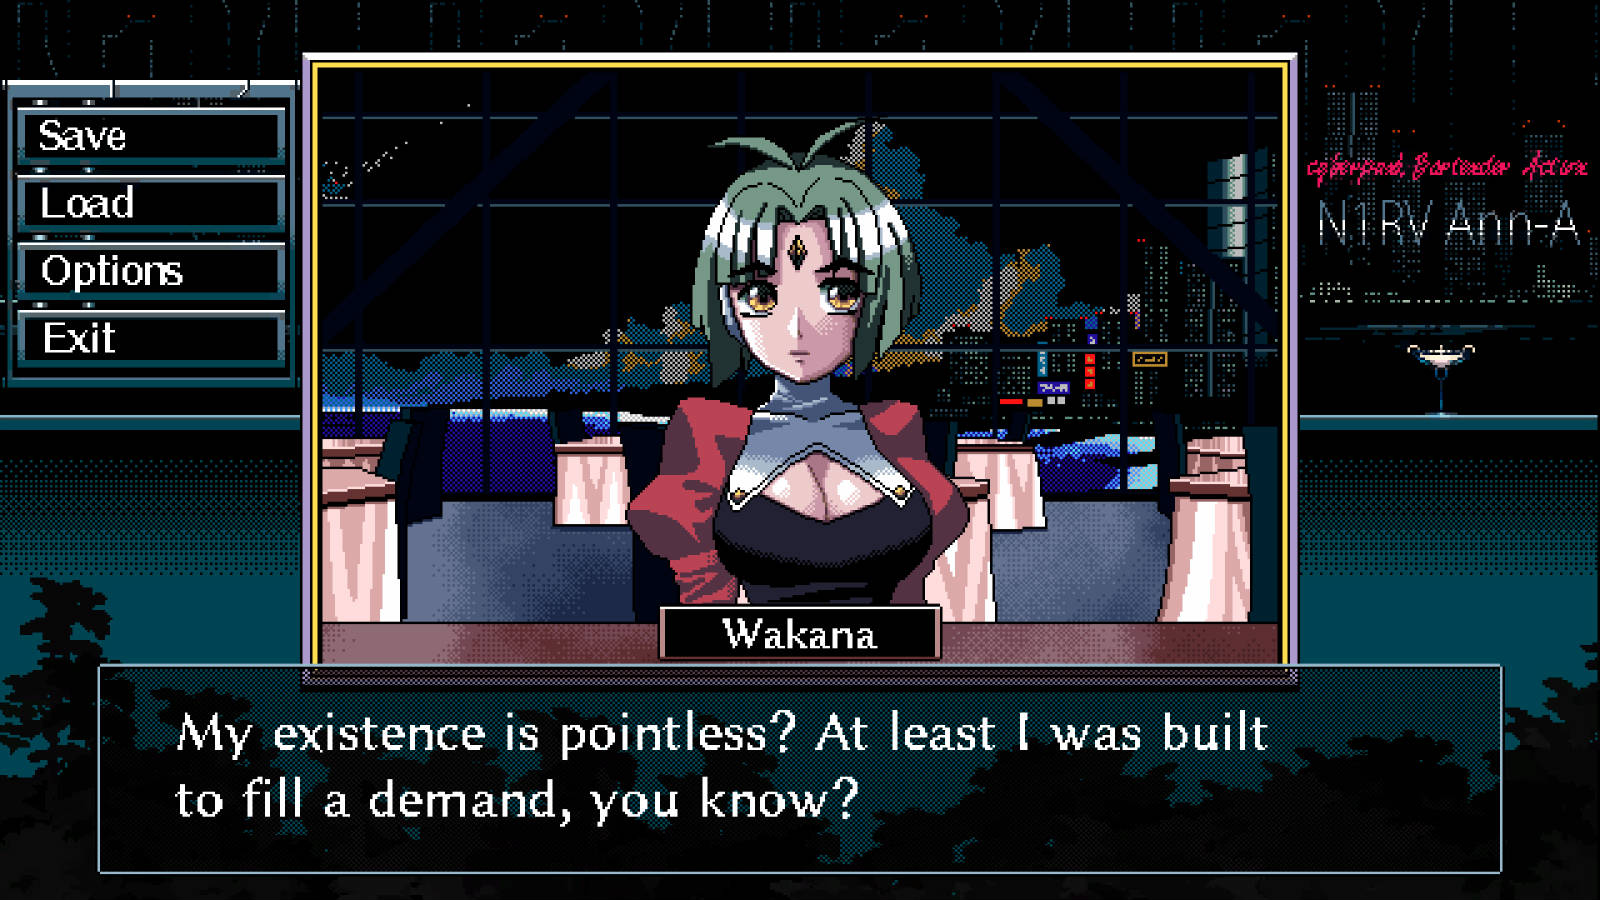 The Cyberpunk Bartending Sequel To Va 11 Hall A Arrives In 2020